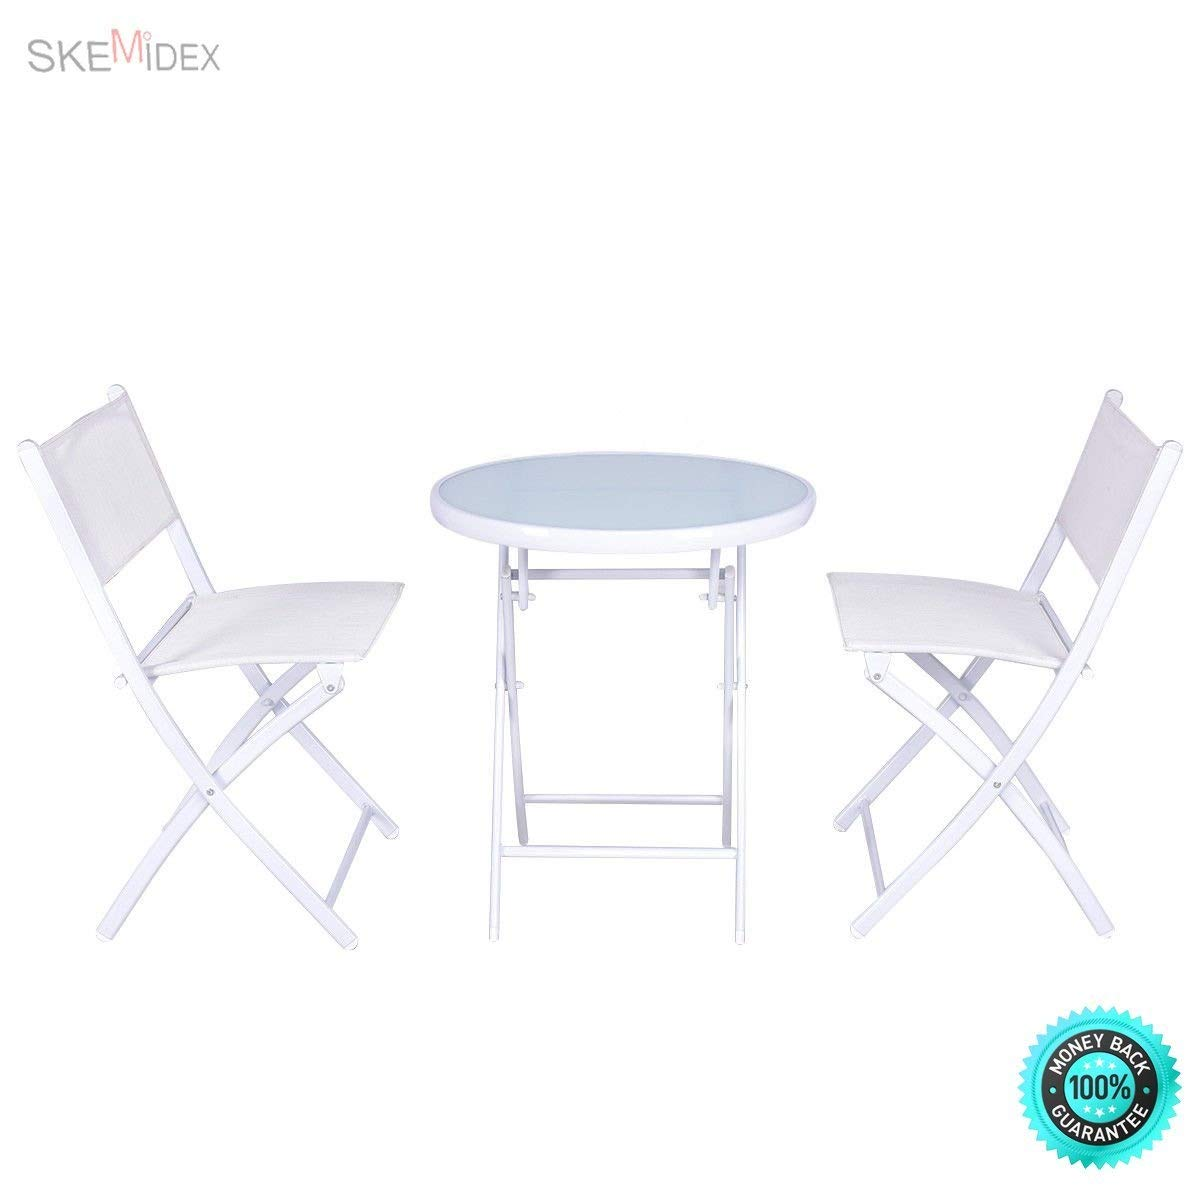 SKEMiDEX 3 PCS Folding Bistro Table Chairs Set Garden Backyard Patio Furniture White New It enjoyable to have breakfast or afternoon tea in the garden or other outside space with this comfortable.